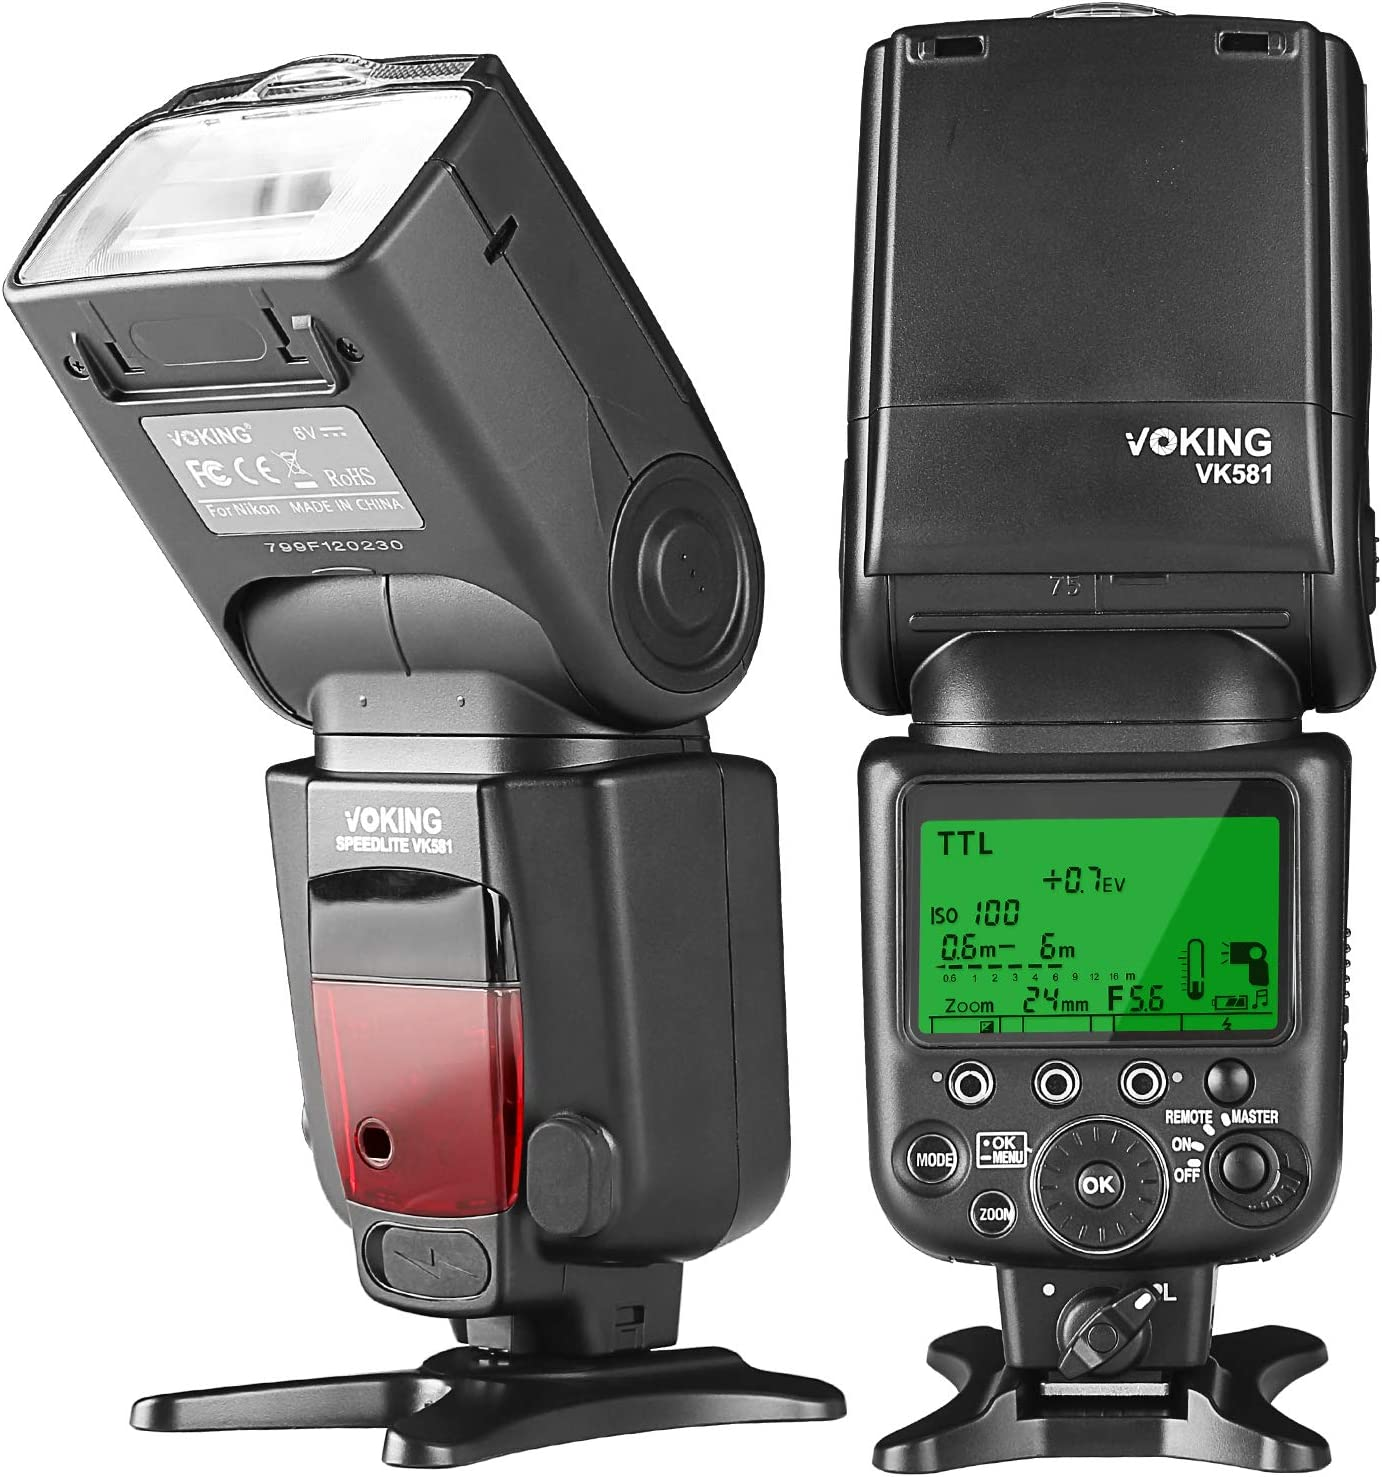 Voking VK581C TTL High Speed Sync Master Camera Flash Speedlite for Canon EOS 70D 77D 80D Rebel T7i T6i T6s T6 T5i T5 T4i T3i and so on